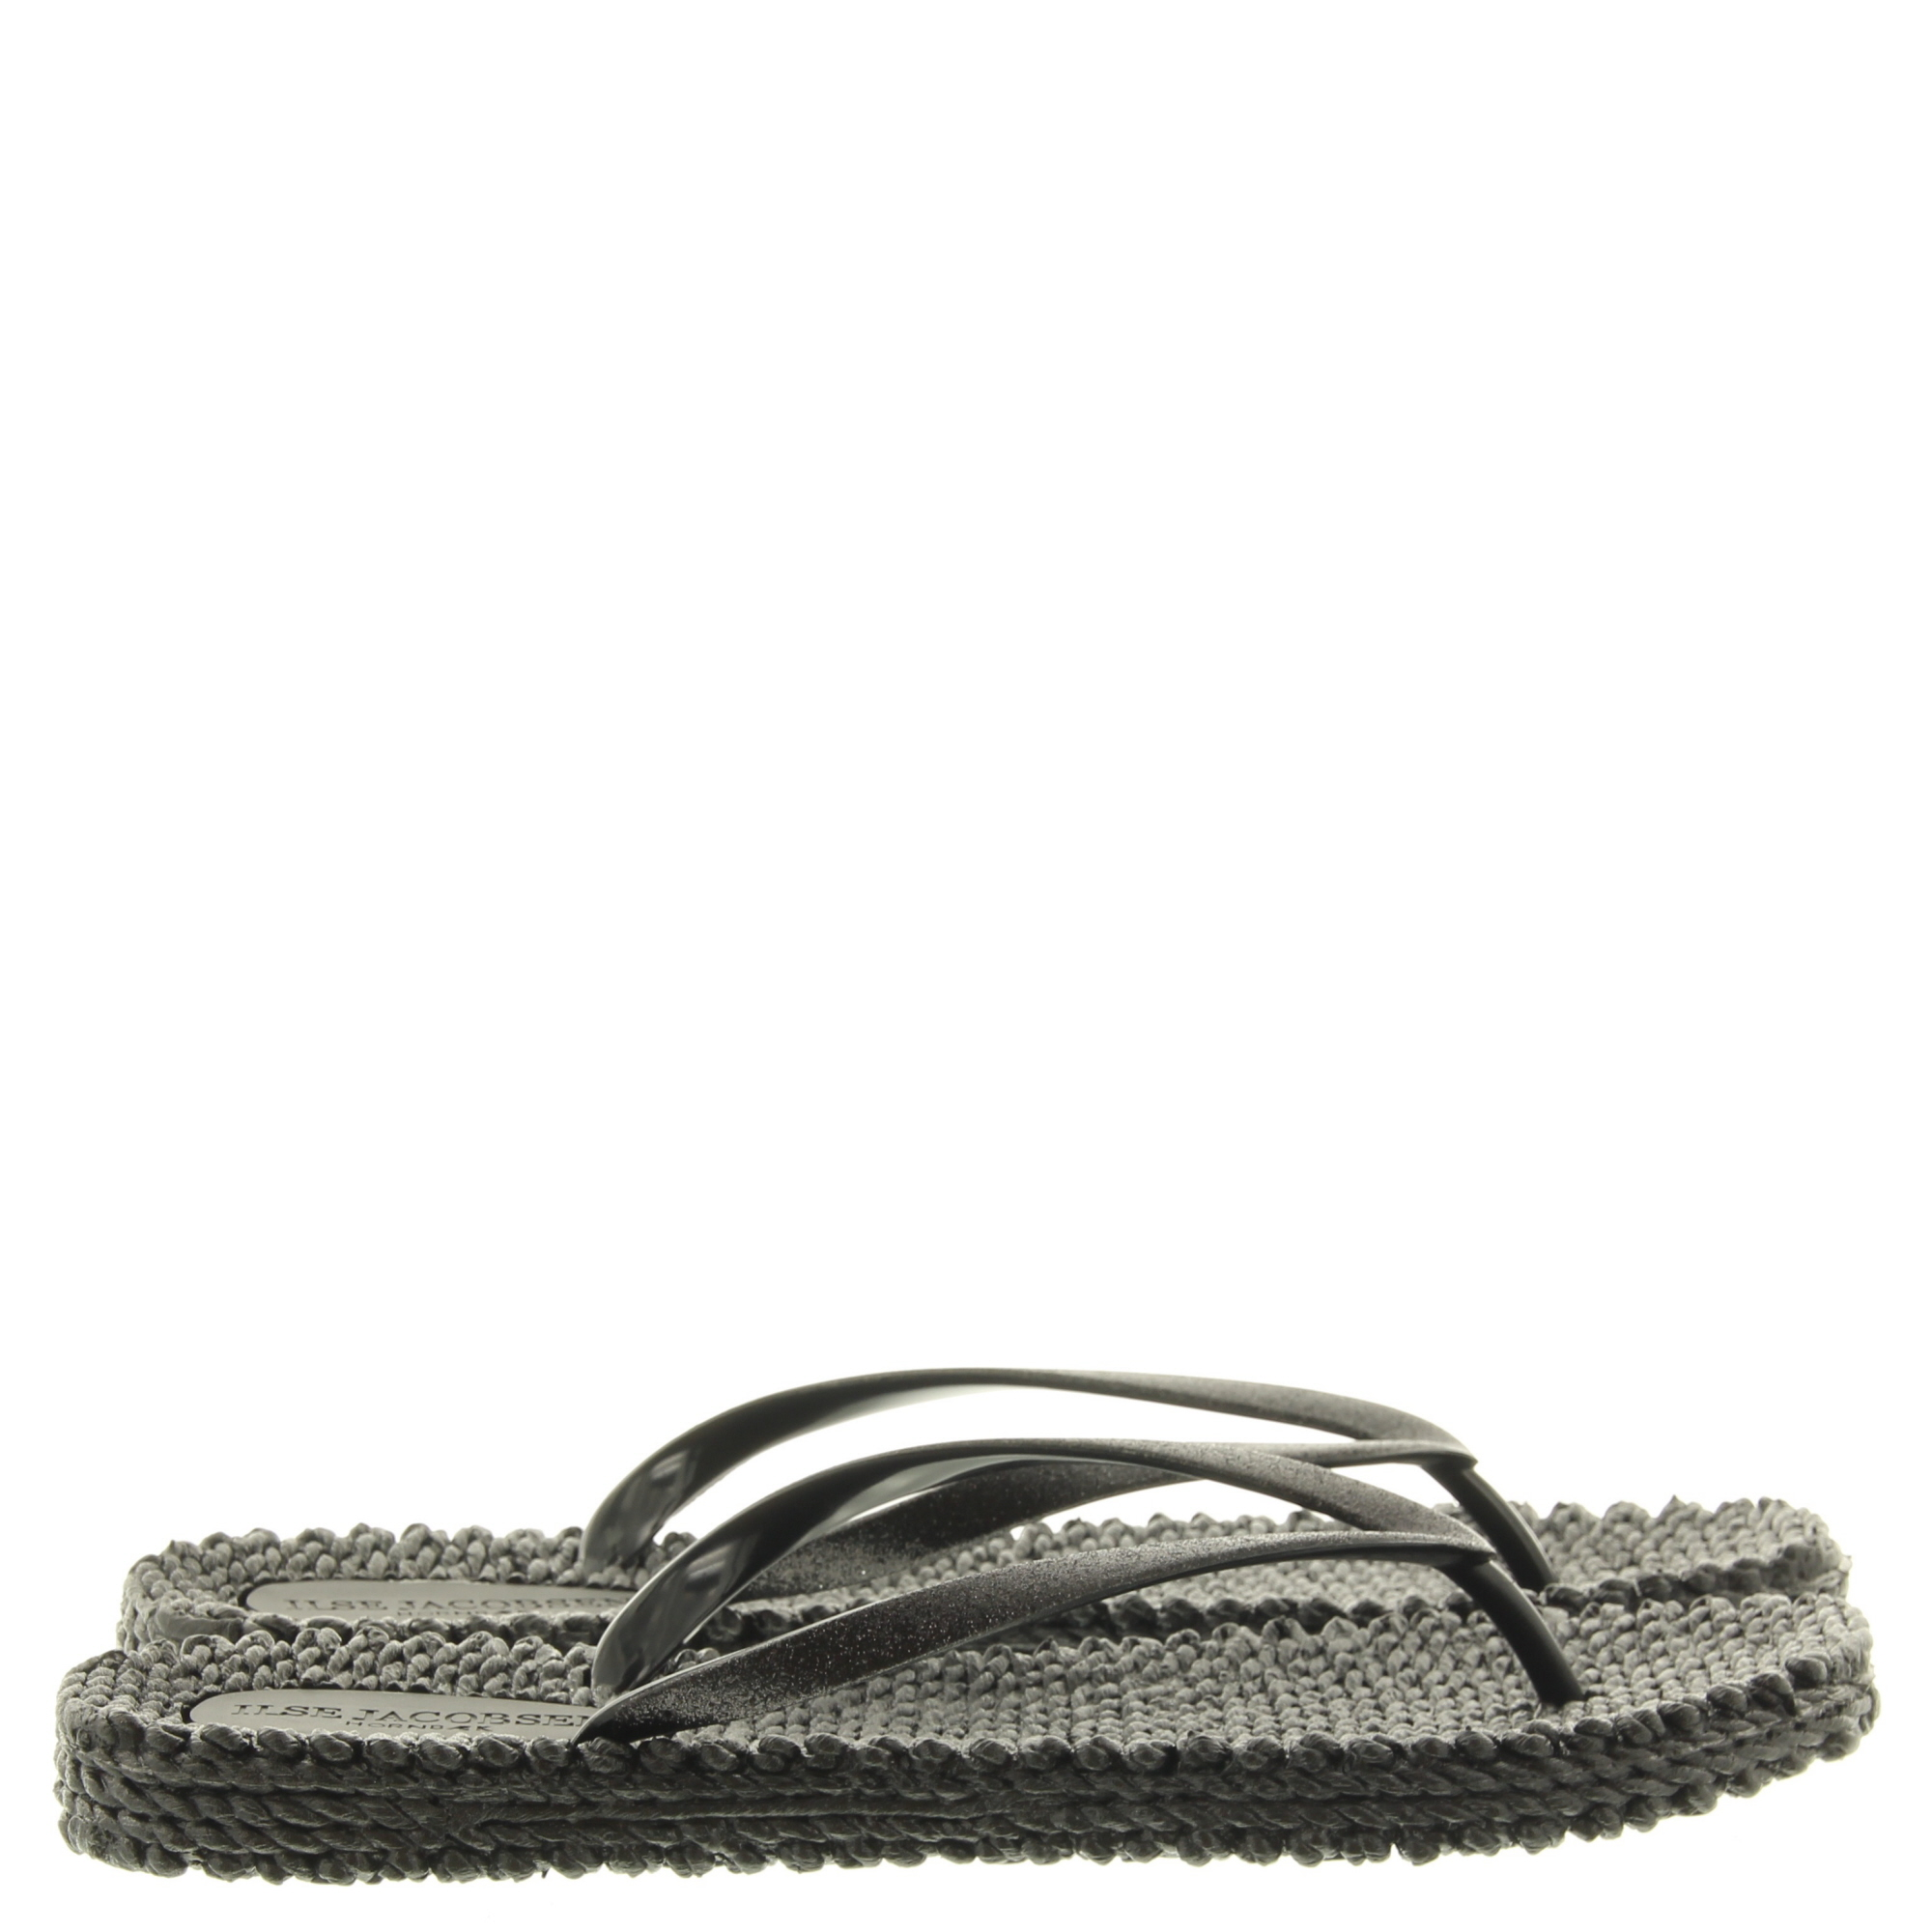 Ilse Jacobsen Fitflops Glitters Black